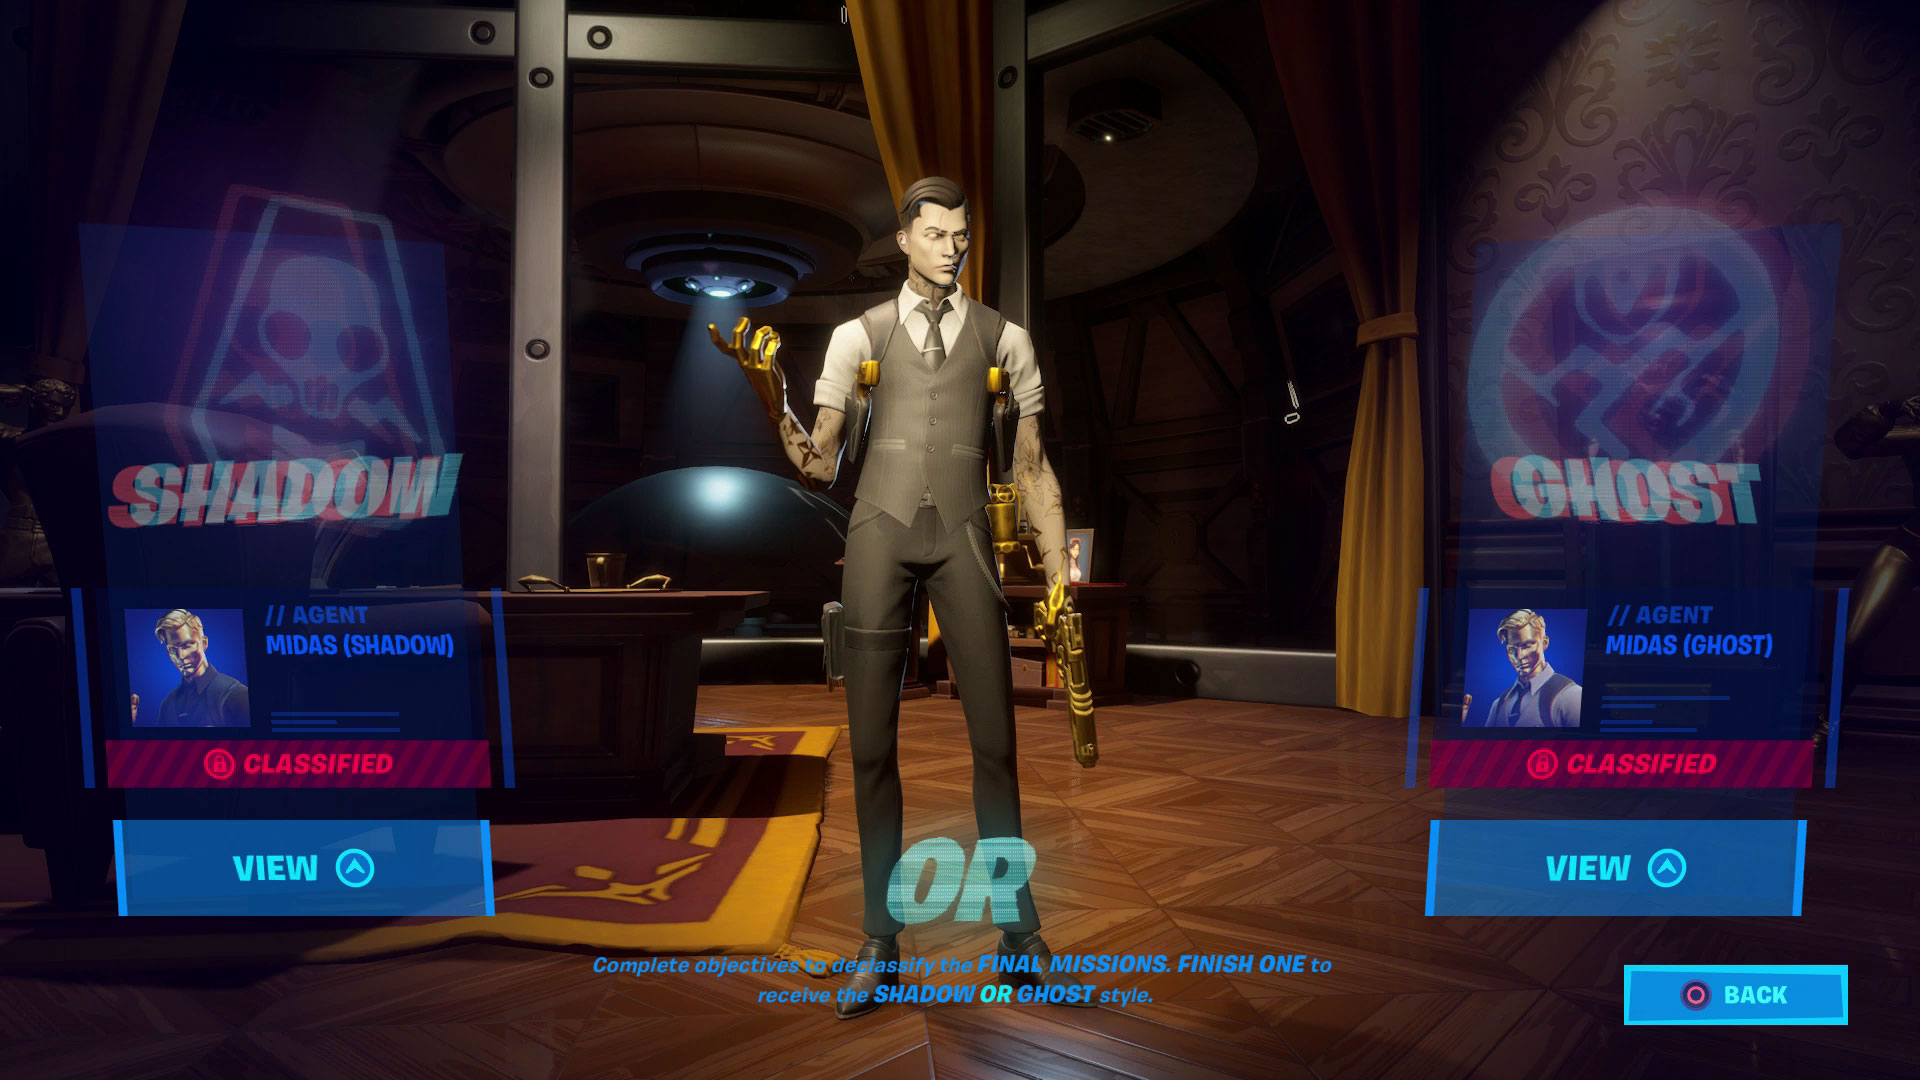 Fortnite Midas Mission Challenges How To Finish His Tasks And Unlock The Shadow Or Ghost Midas Style Gamesradar